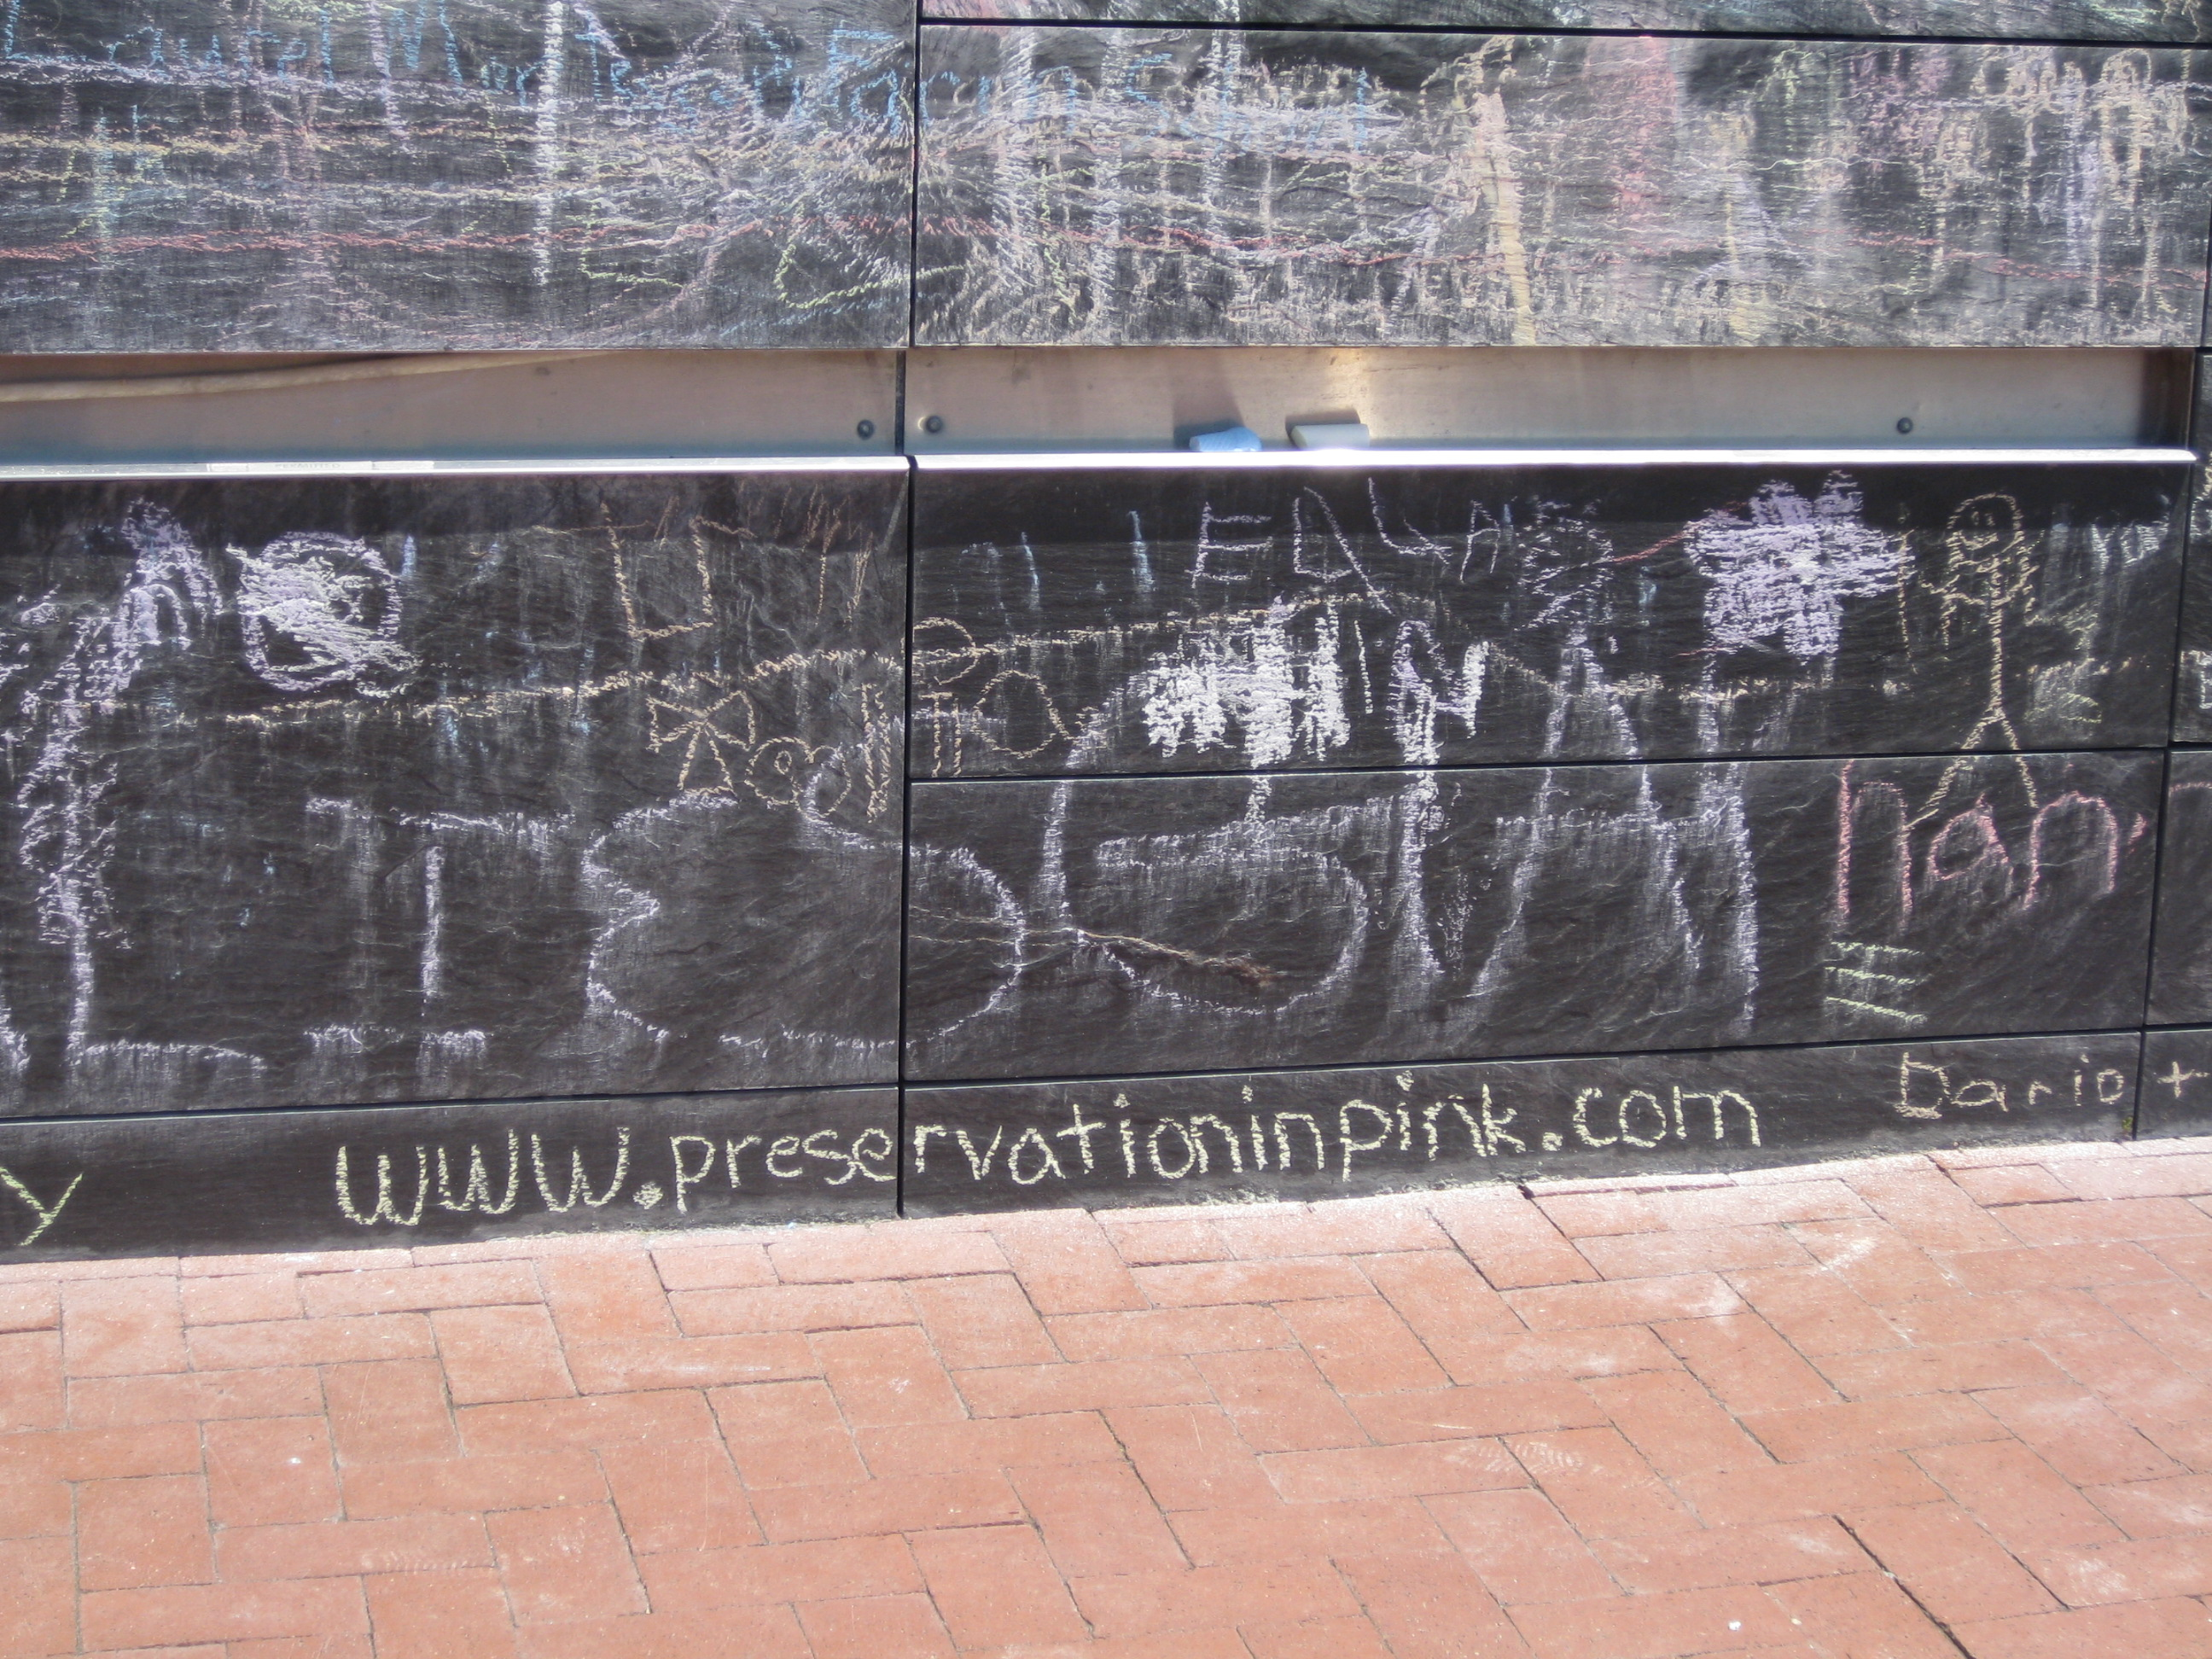 Preservation in Pink on the chalkboard